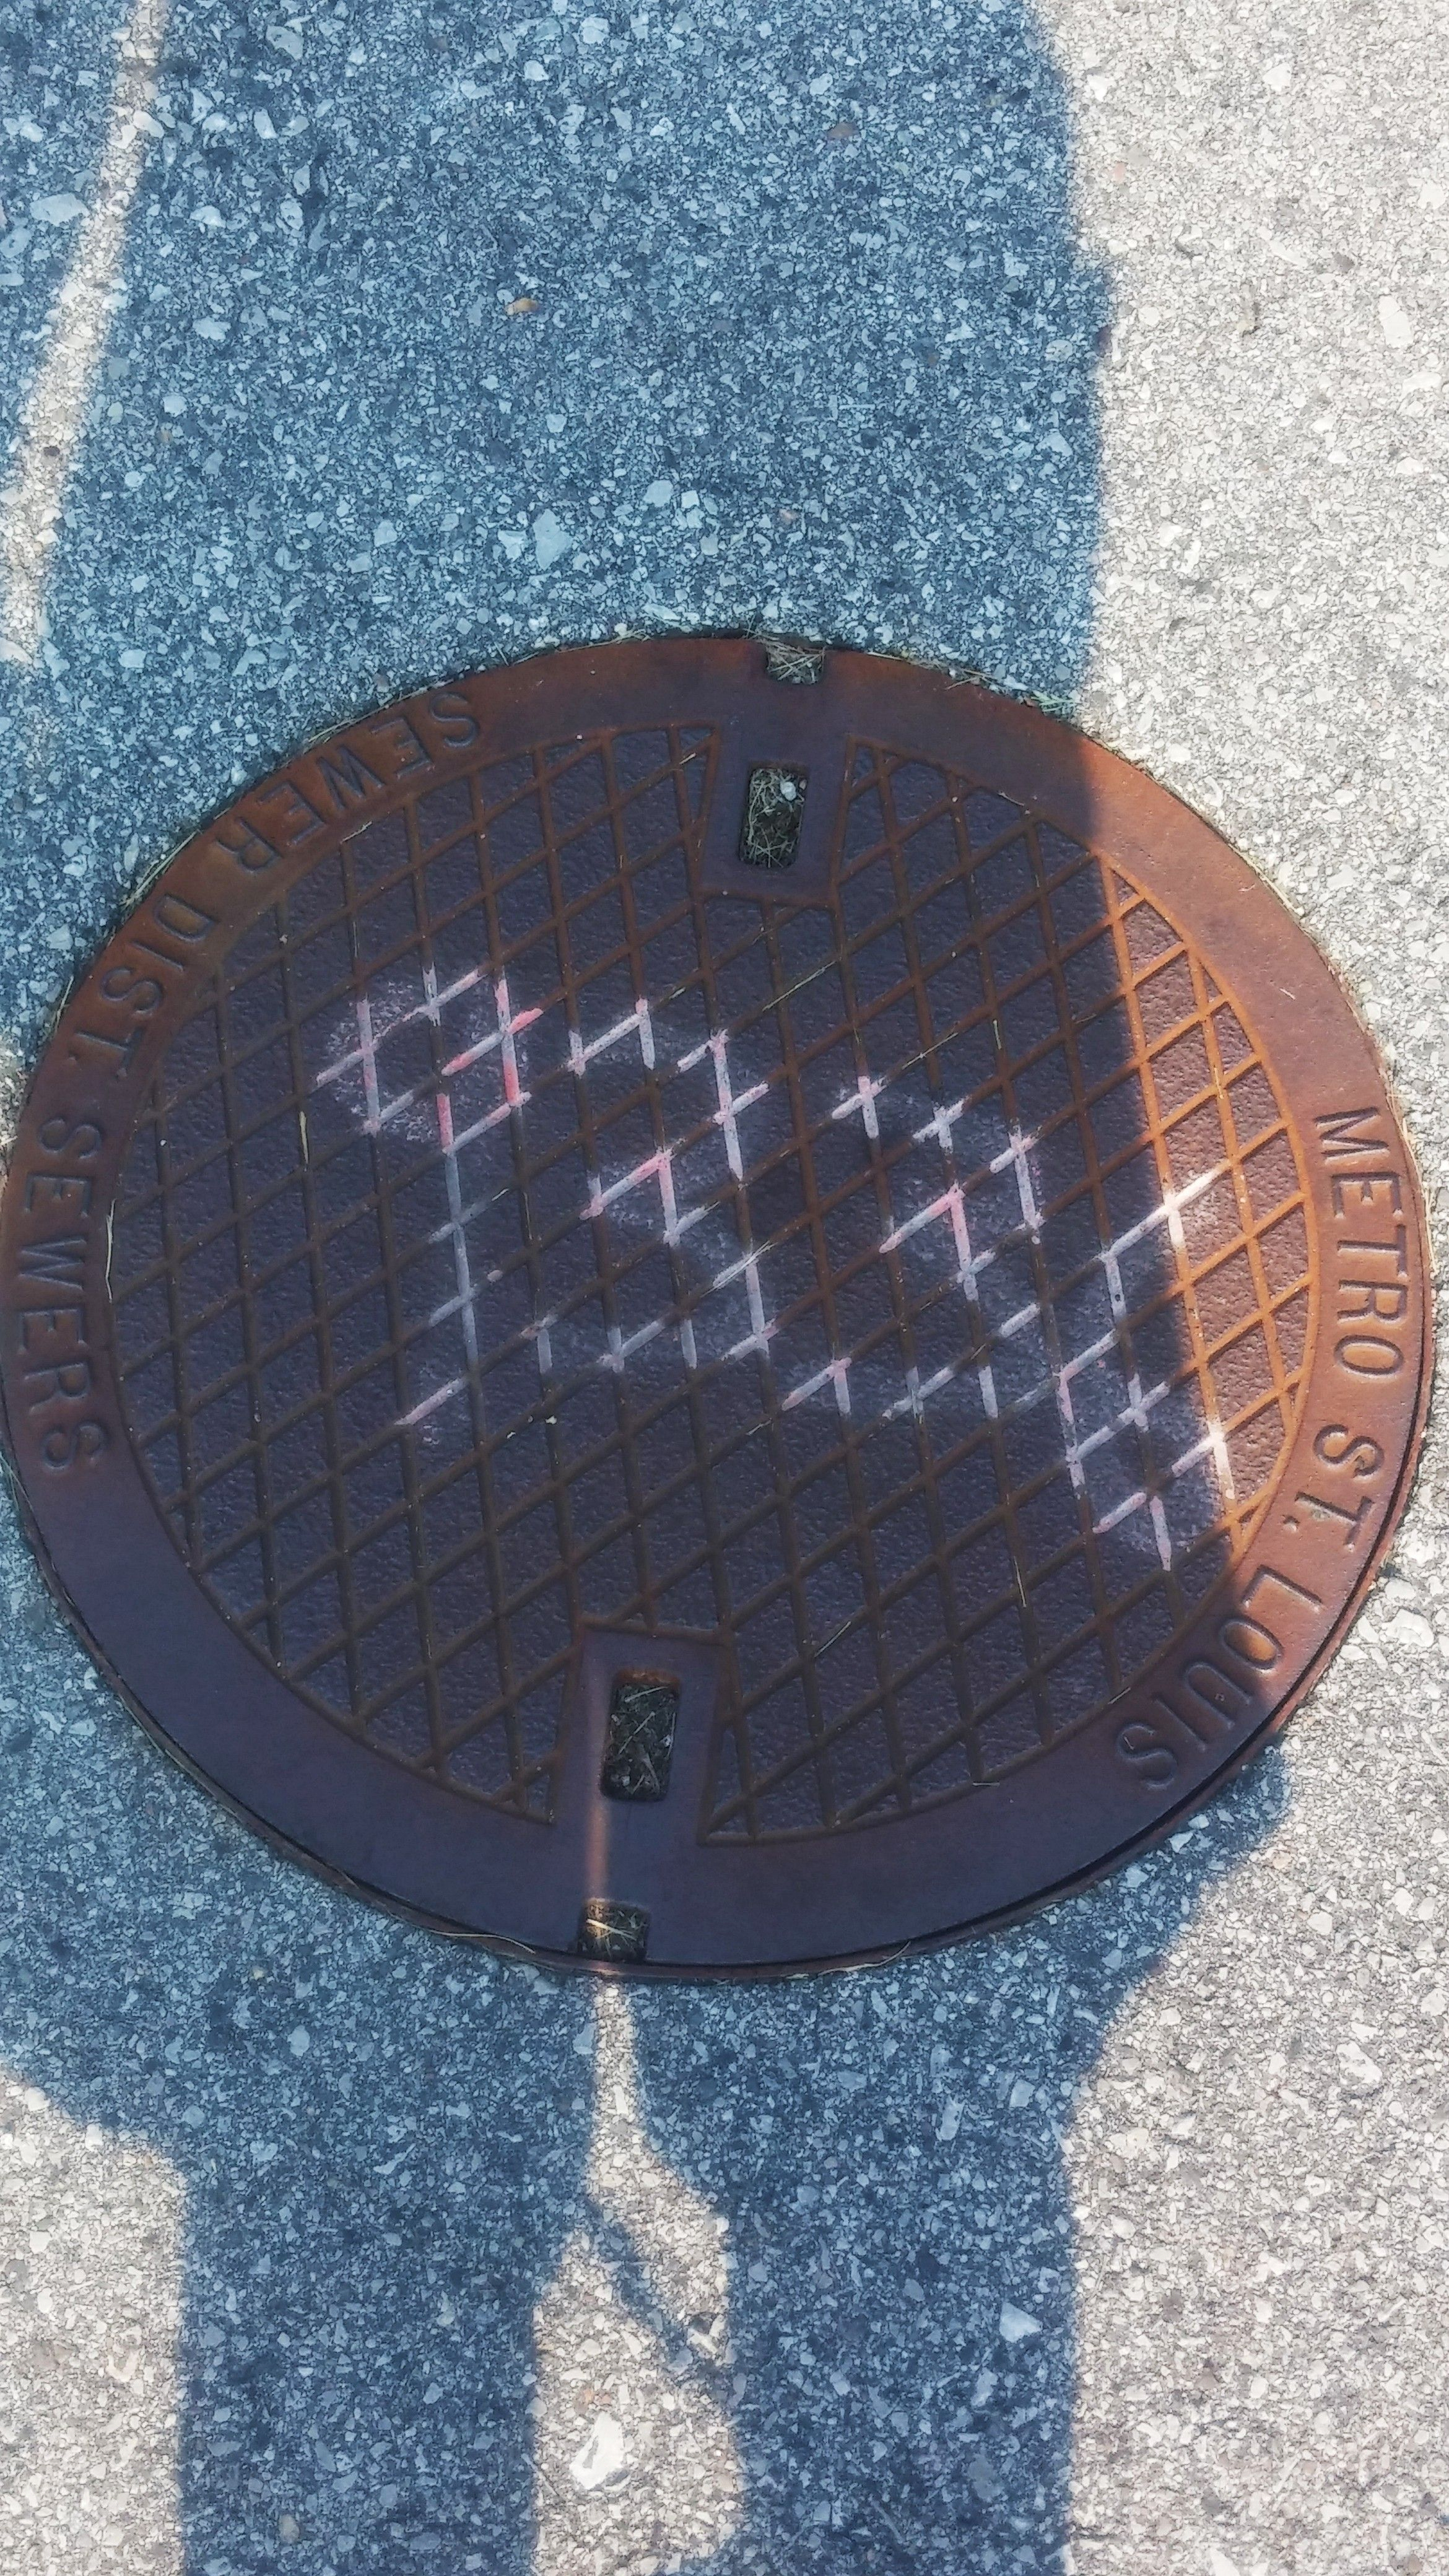 Manhole cover: supplementary angles, transversals, rhombuses, intersecting lines, parallel lines, 4 digit number